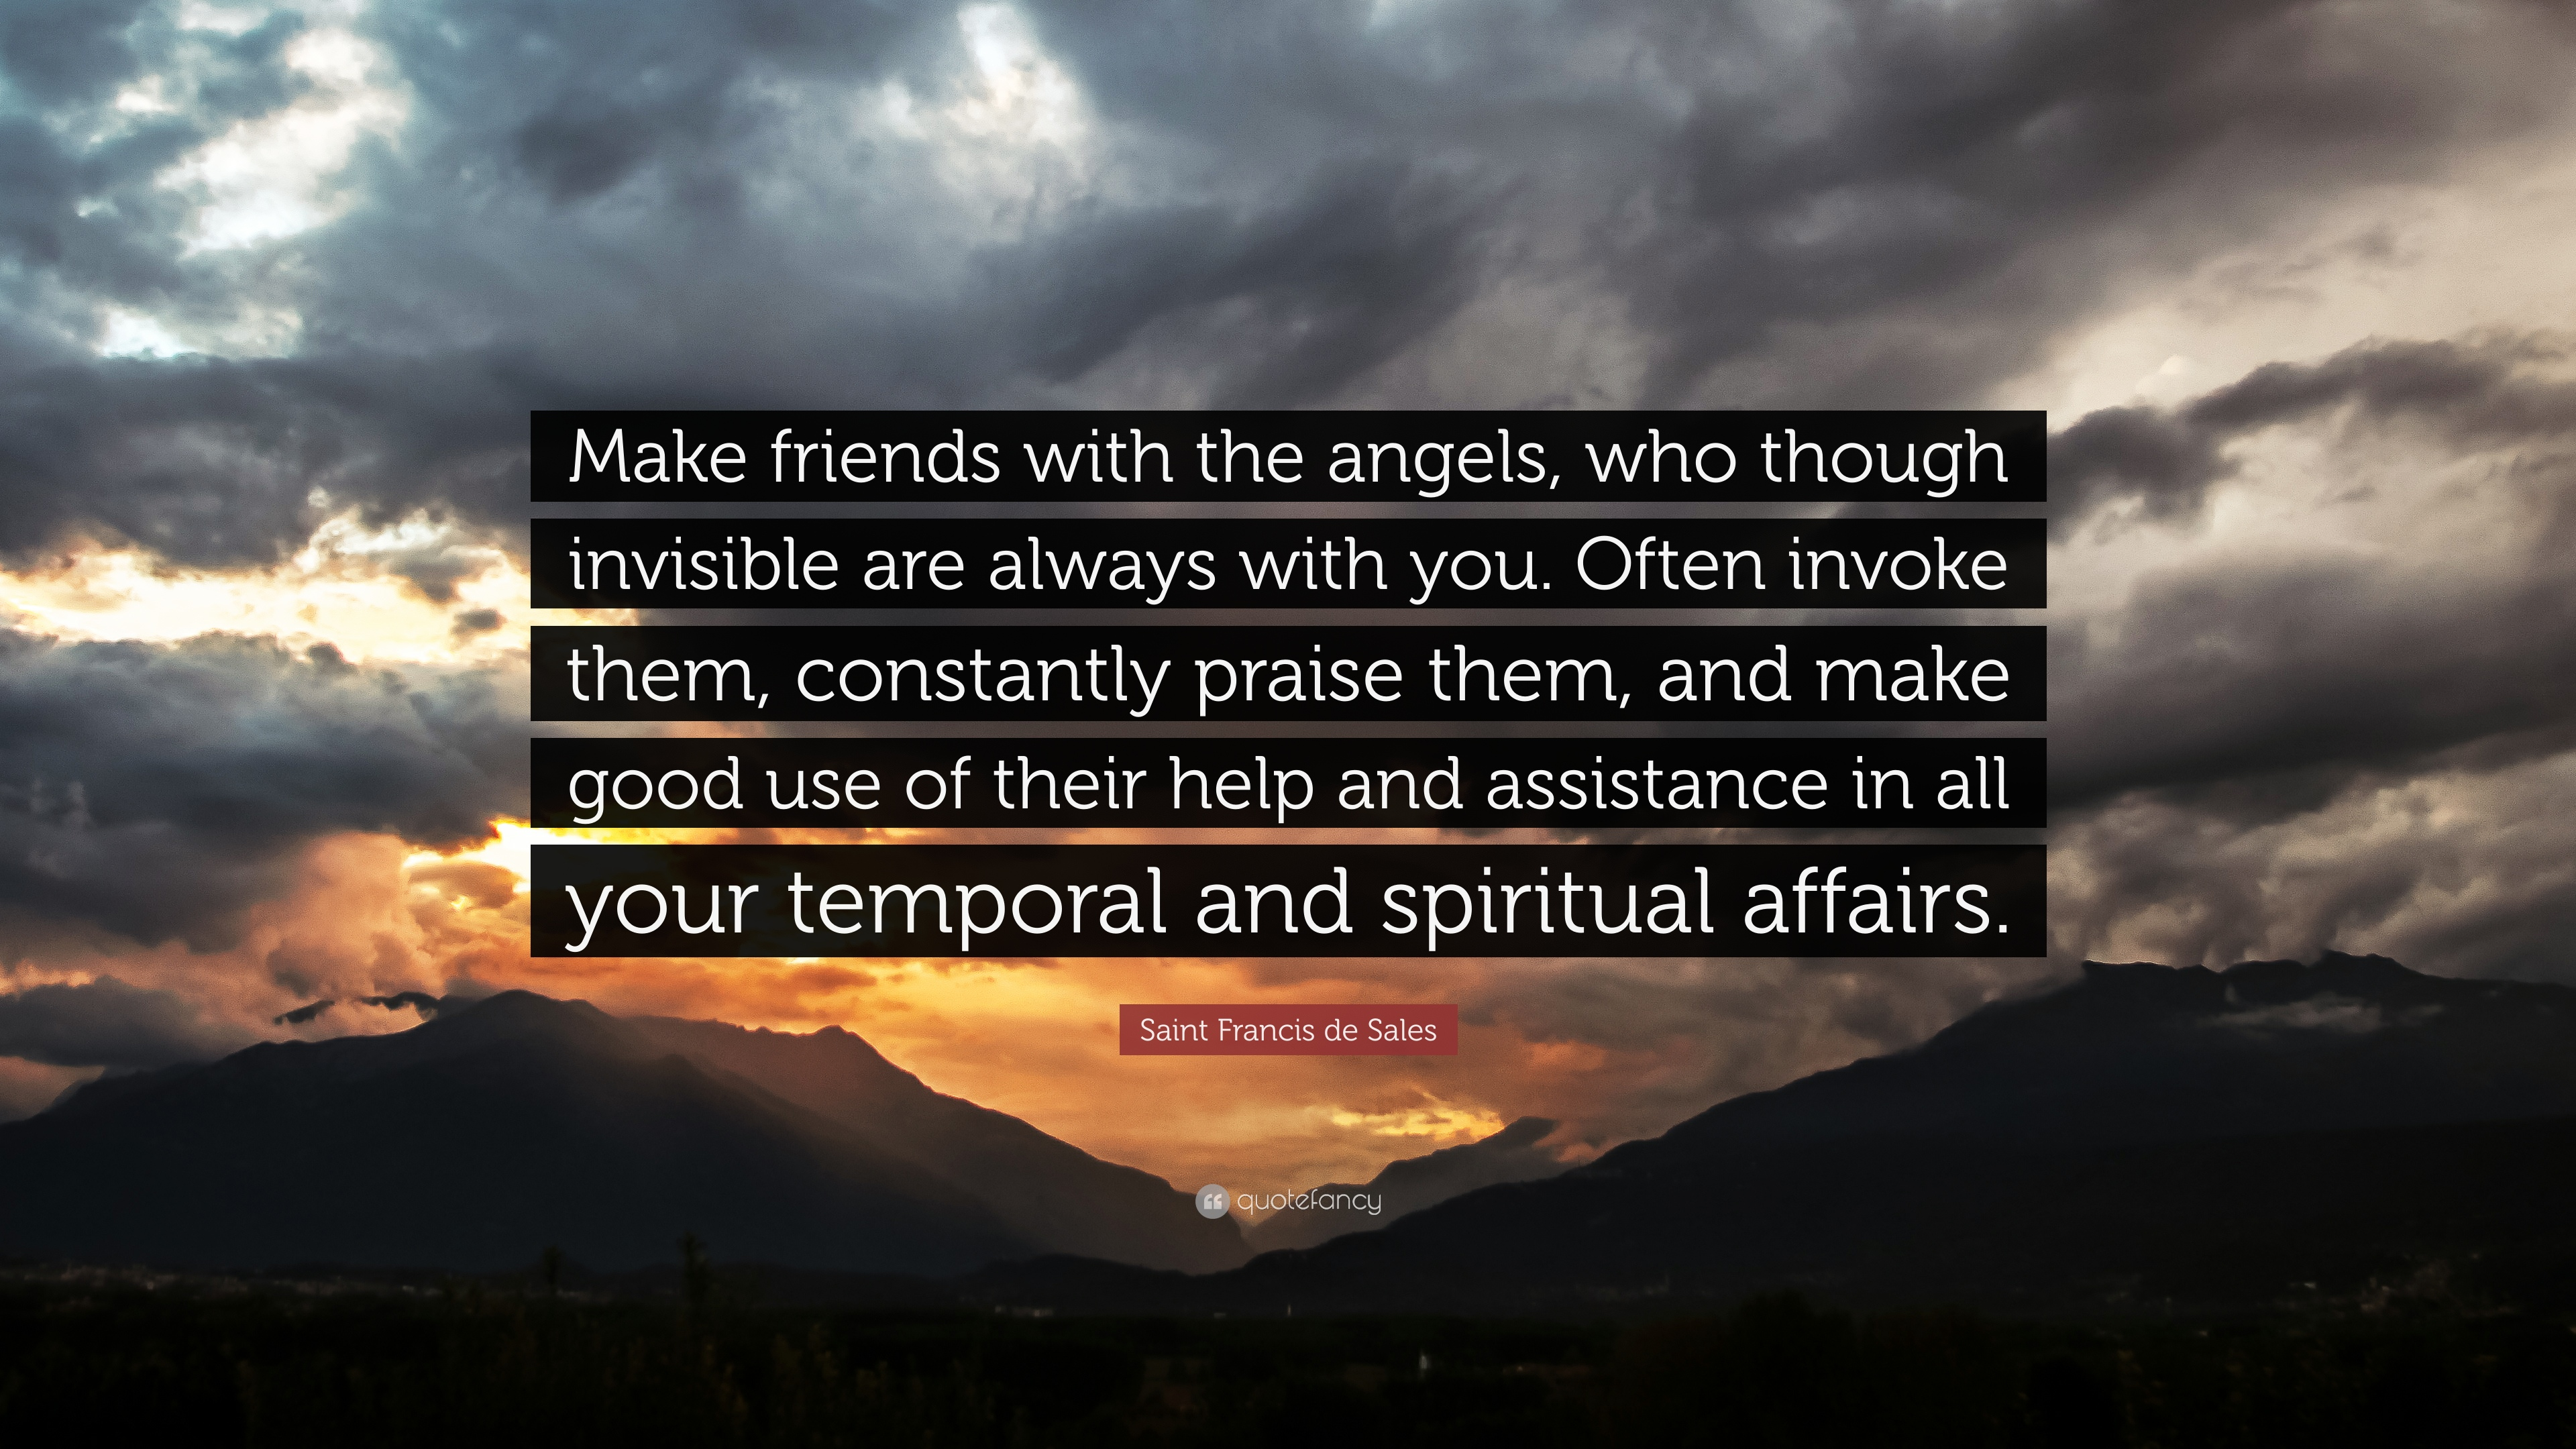 saint francis de sales quote make friends with the angels who though invisible